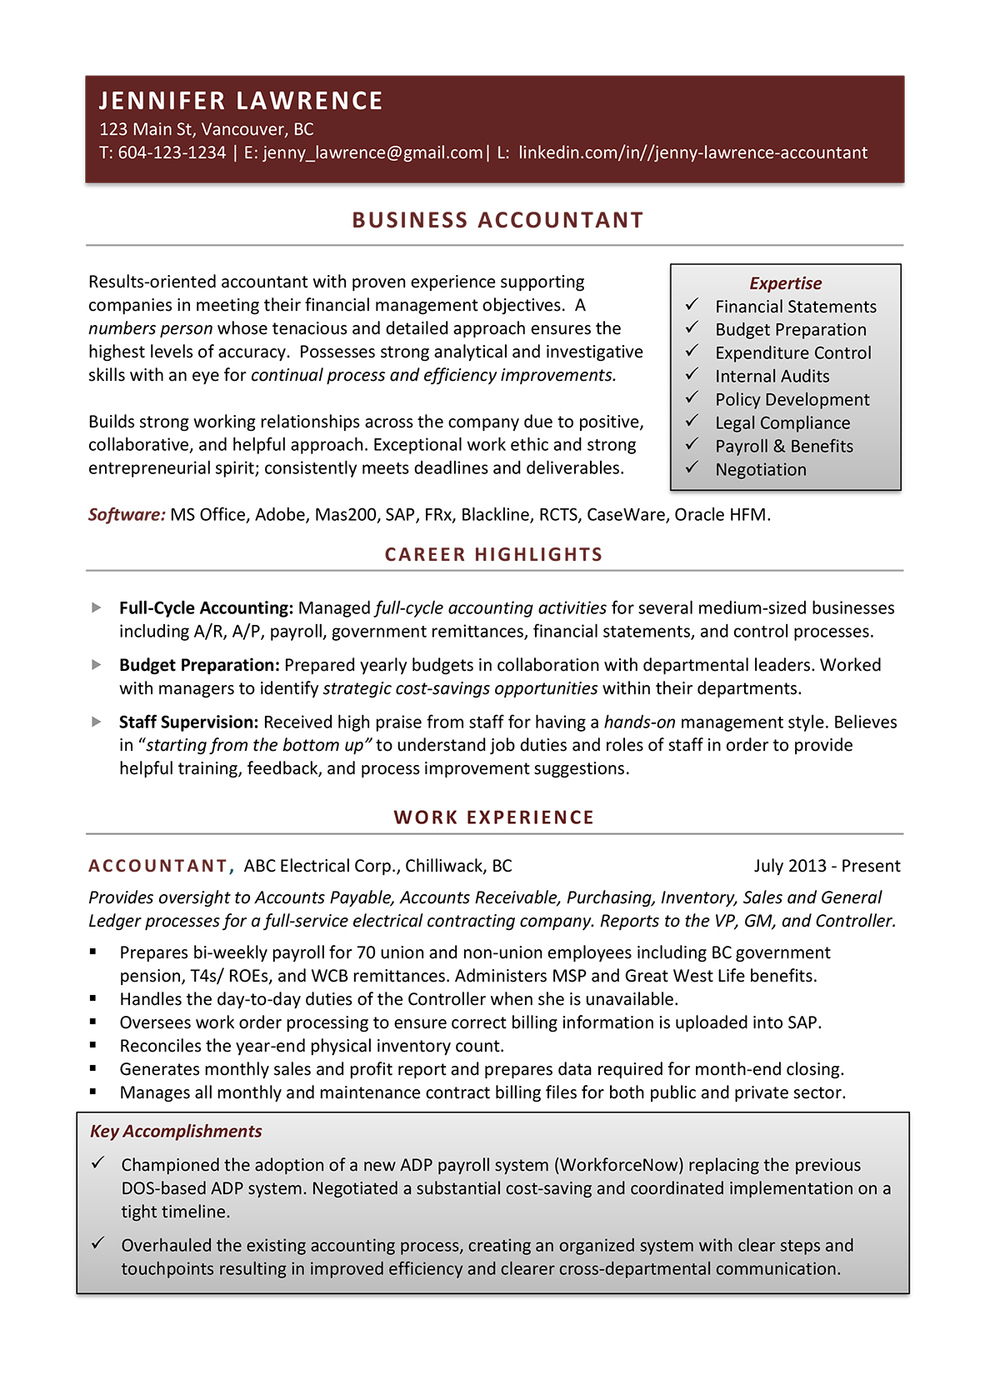 sample resumes career story